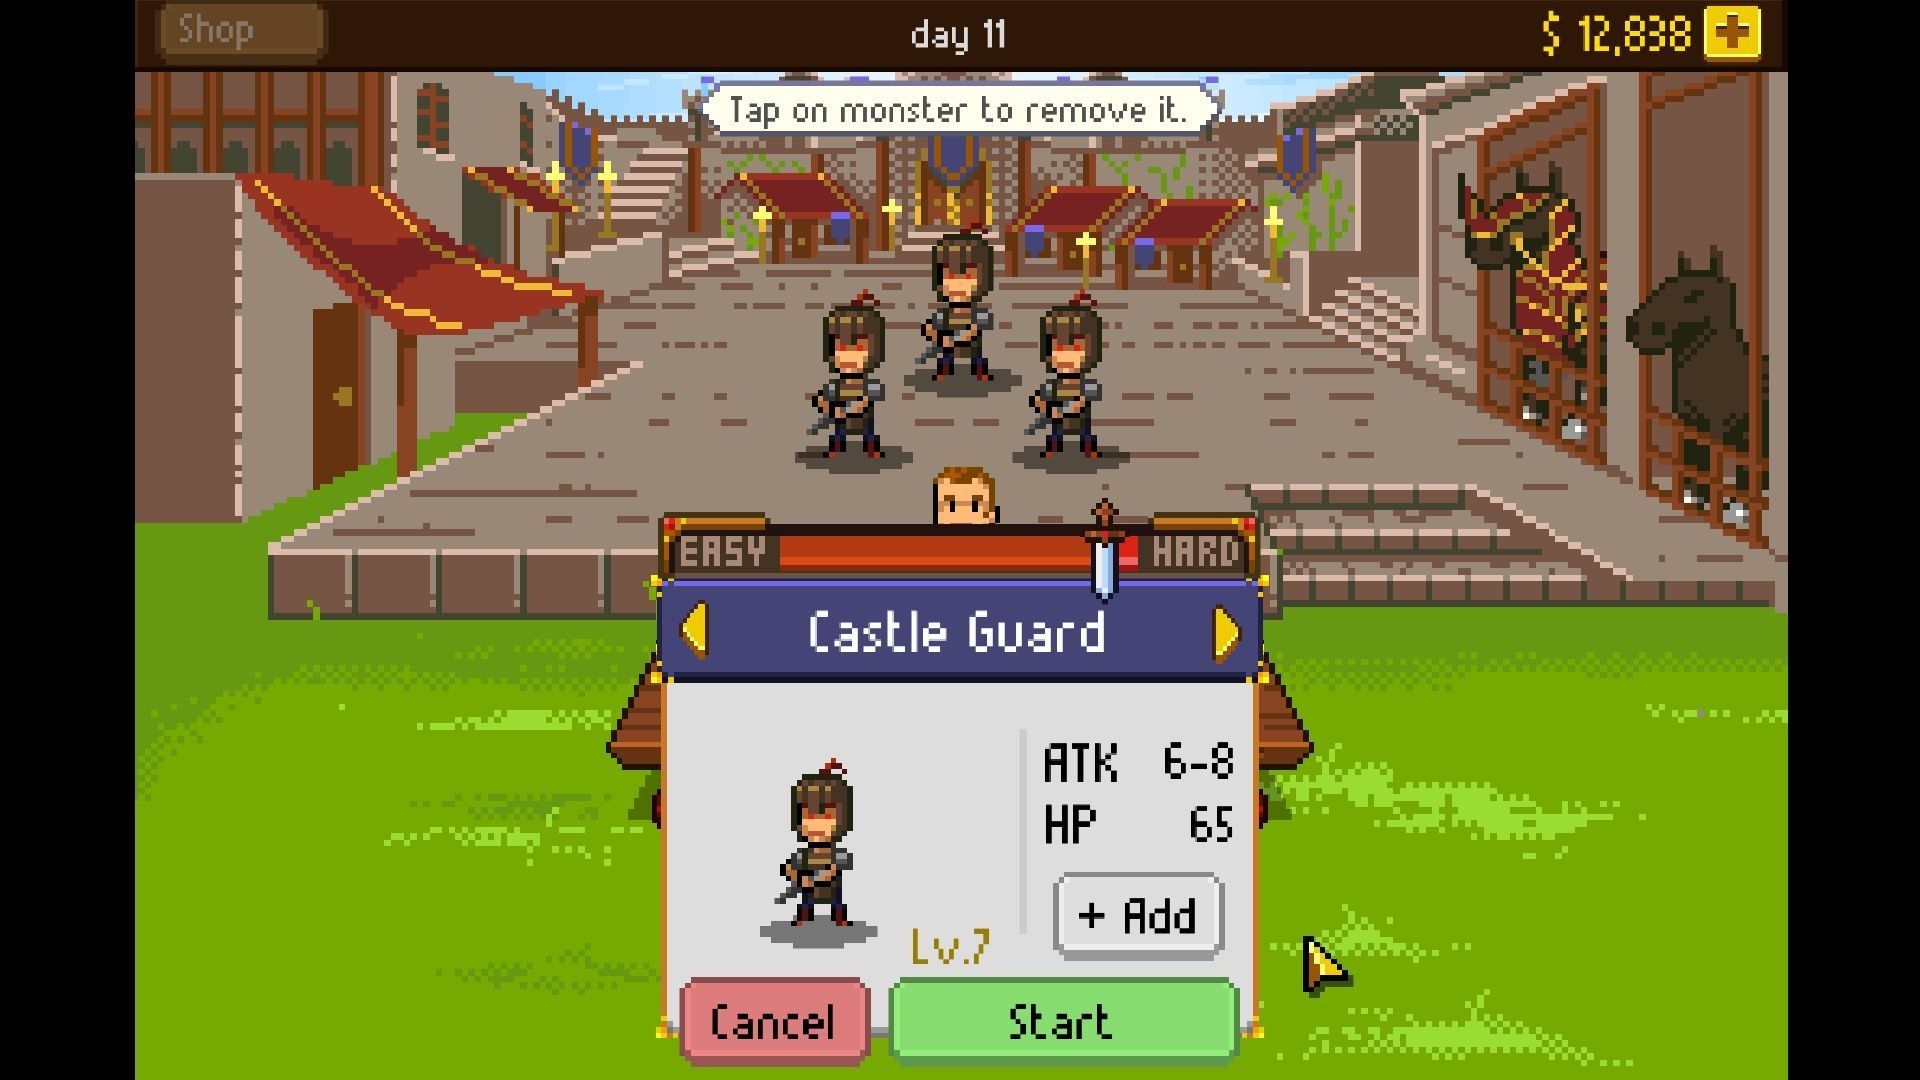 BUY Knights of Pen and Paper +1 Edition Steam CD KEY